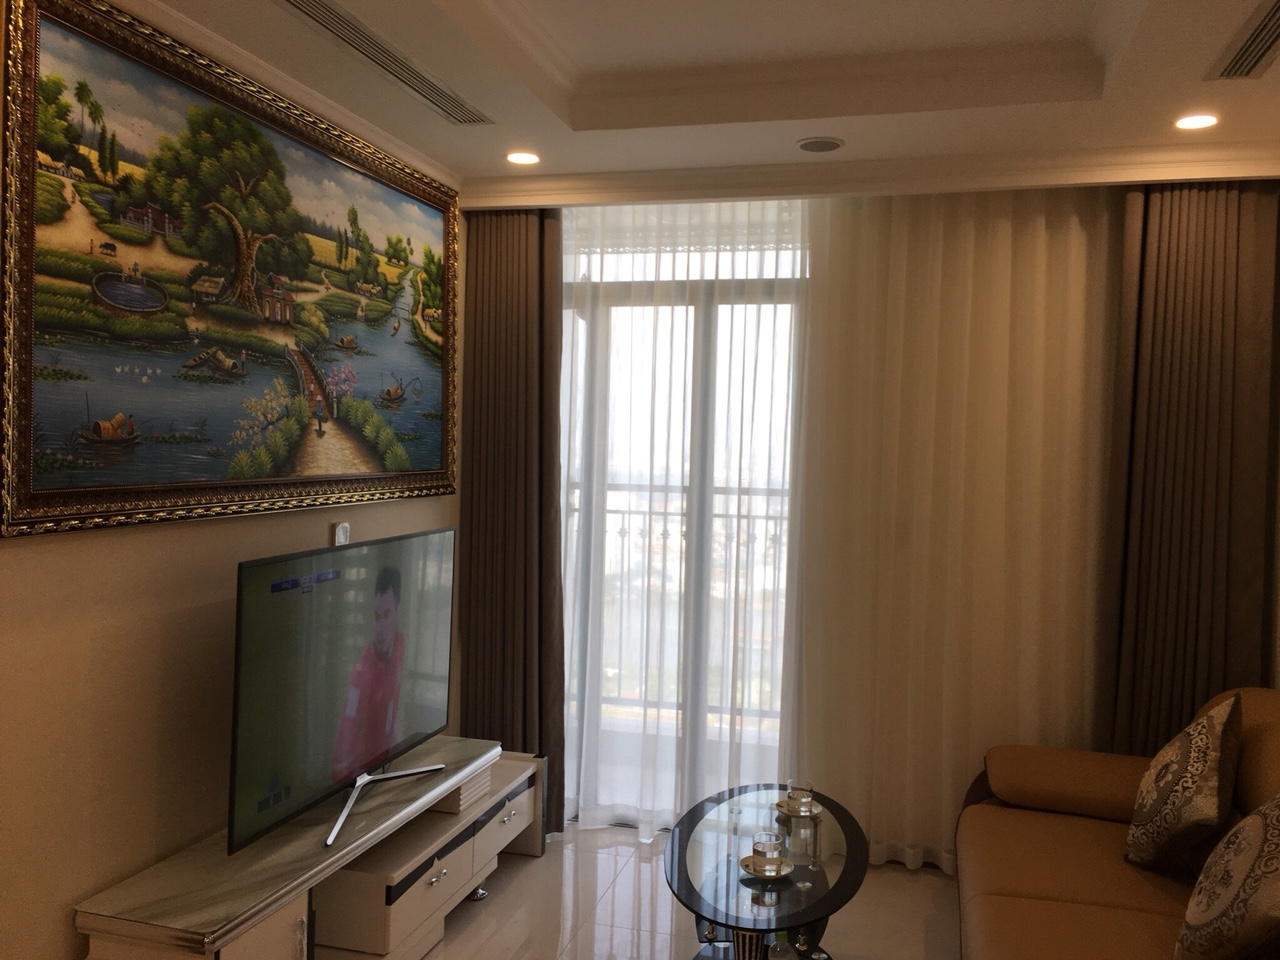 apartment for rent in HCMC BT106L1991 Vu (4)